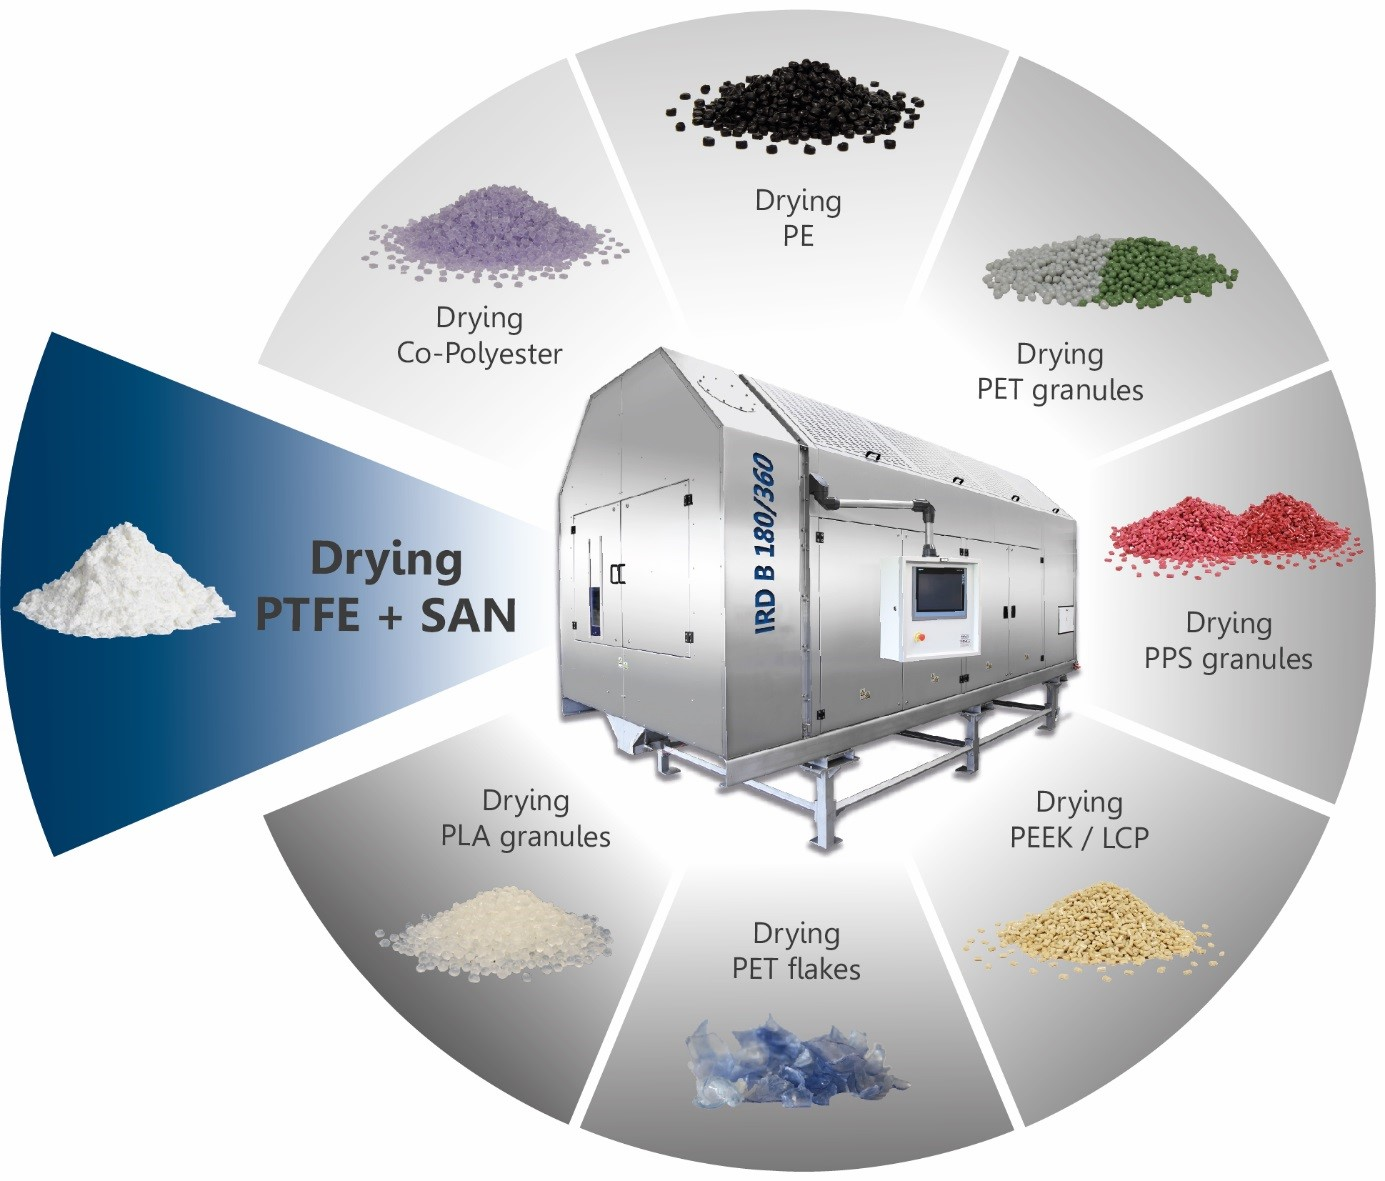 Drying plastics examples